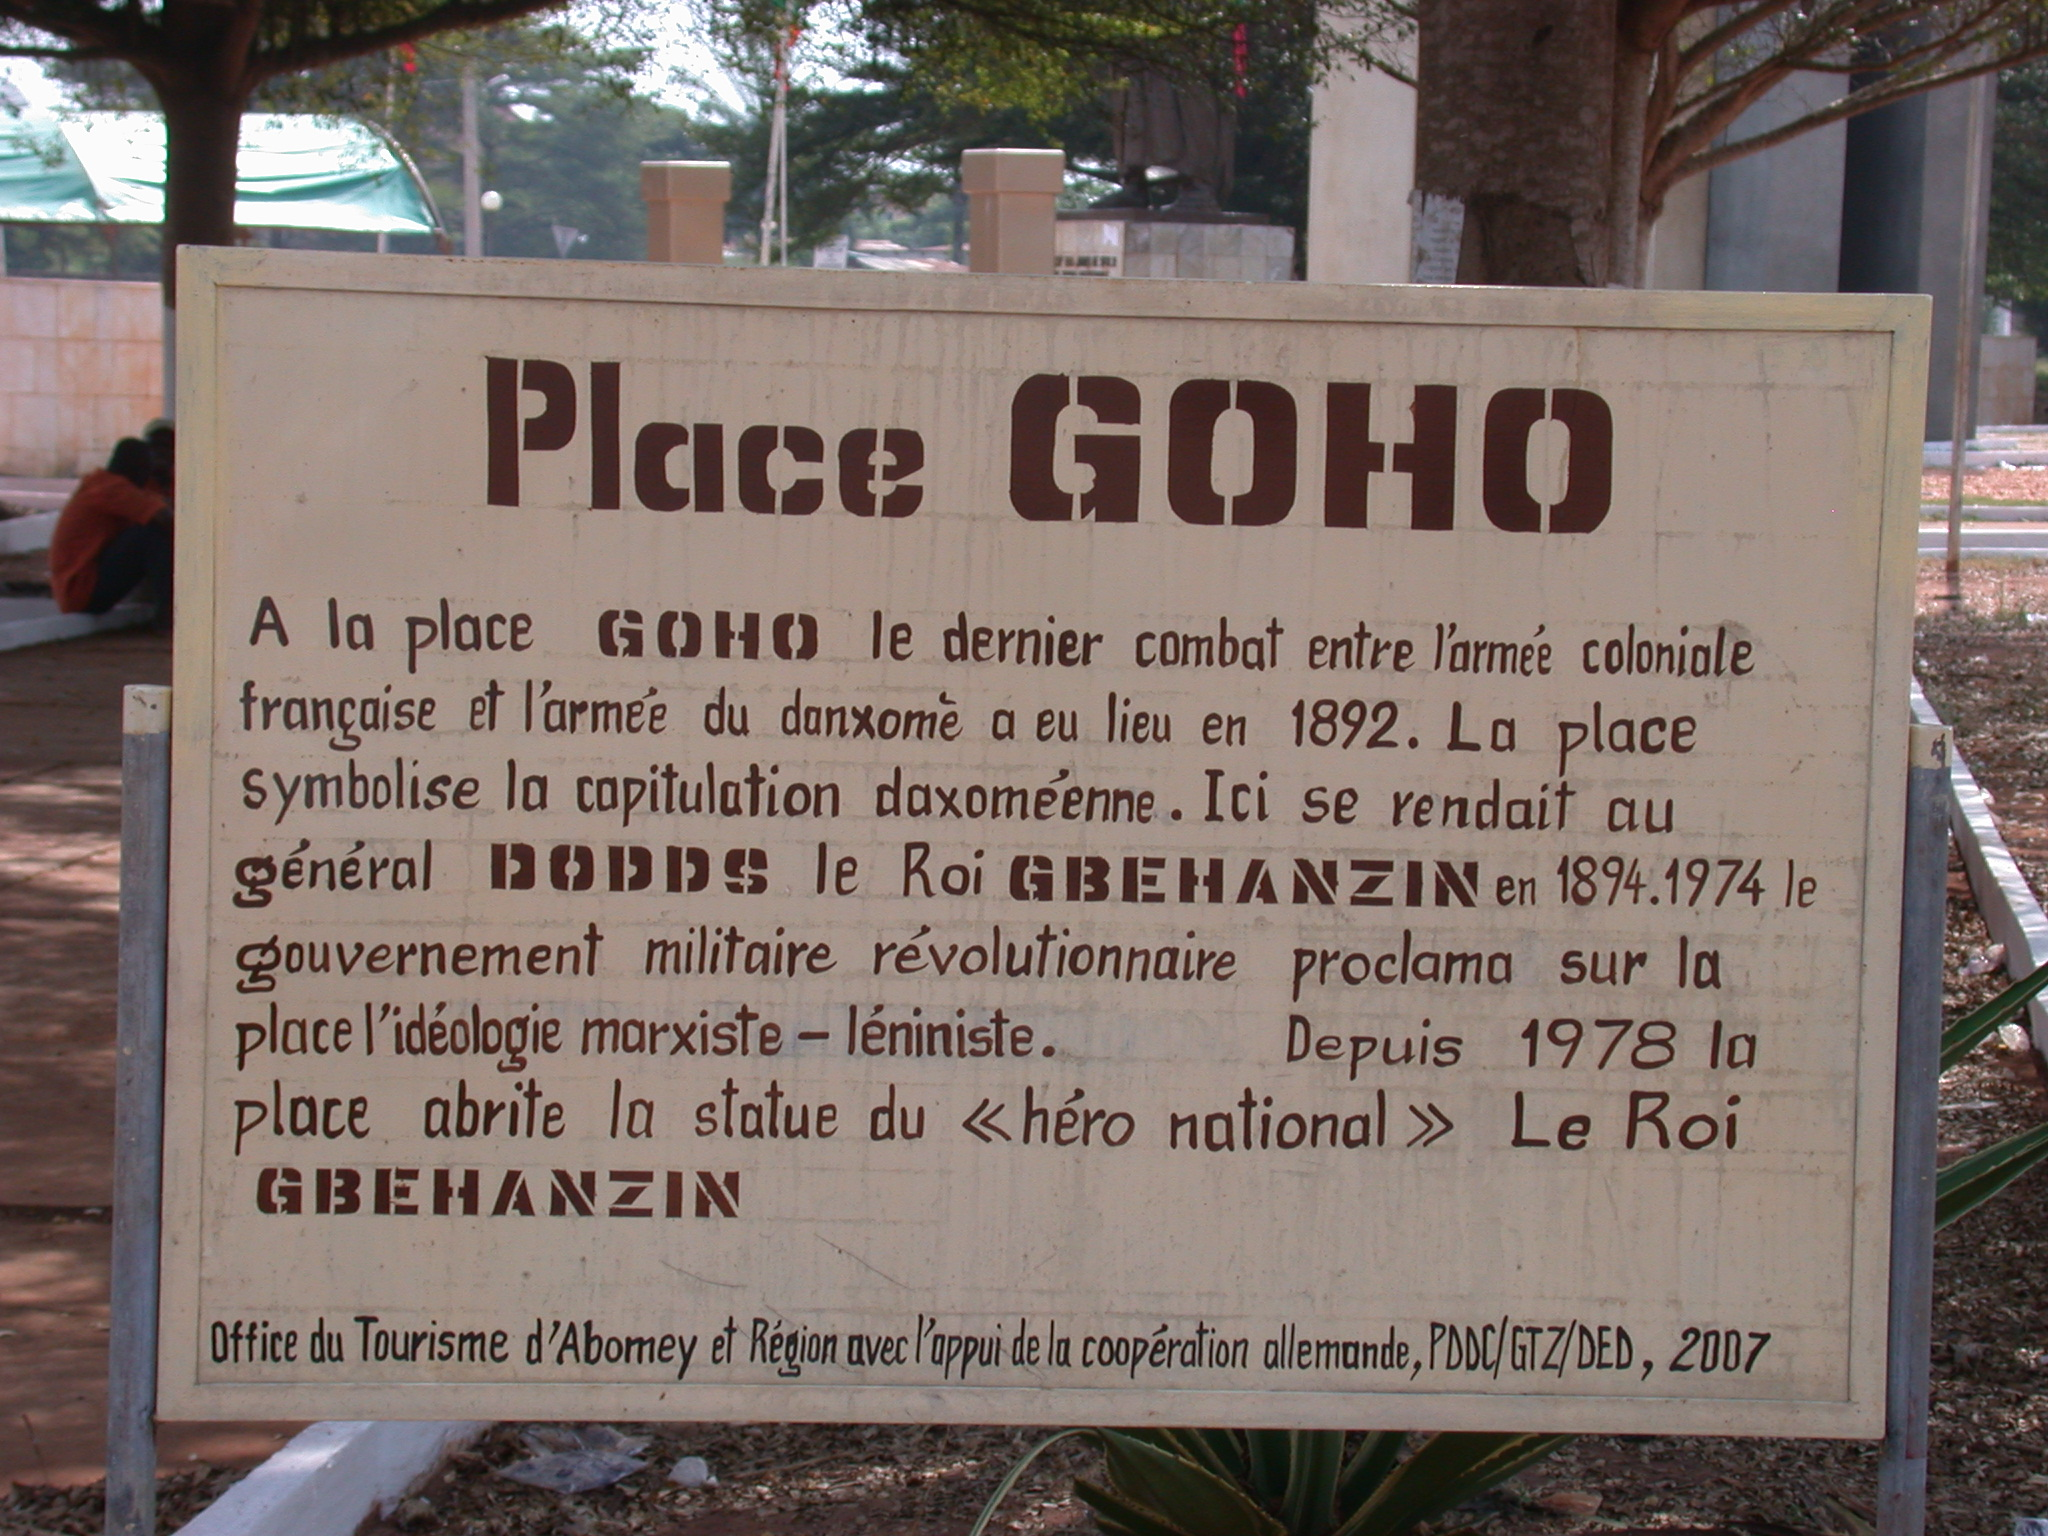 Sign for Place Goho, Abomey, Benin